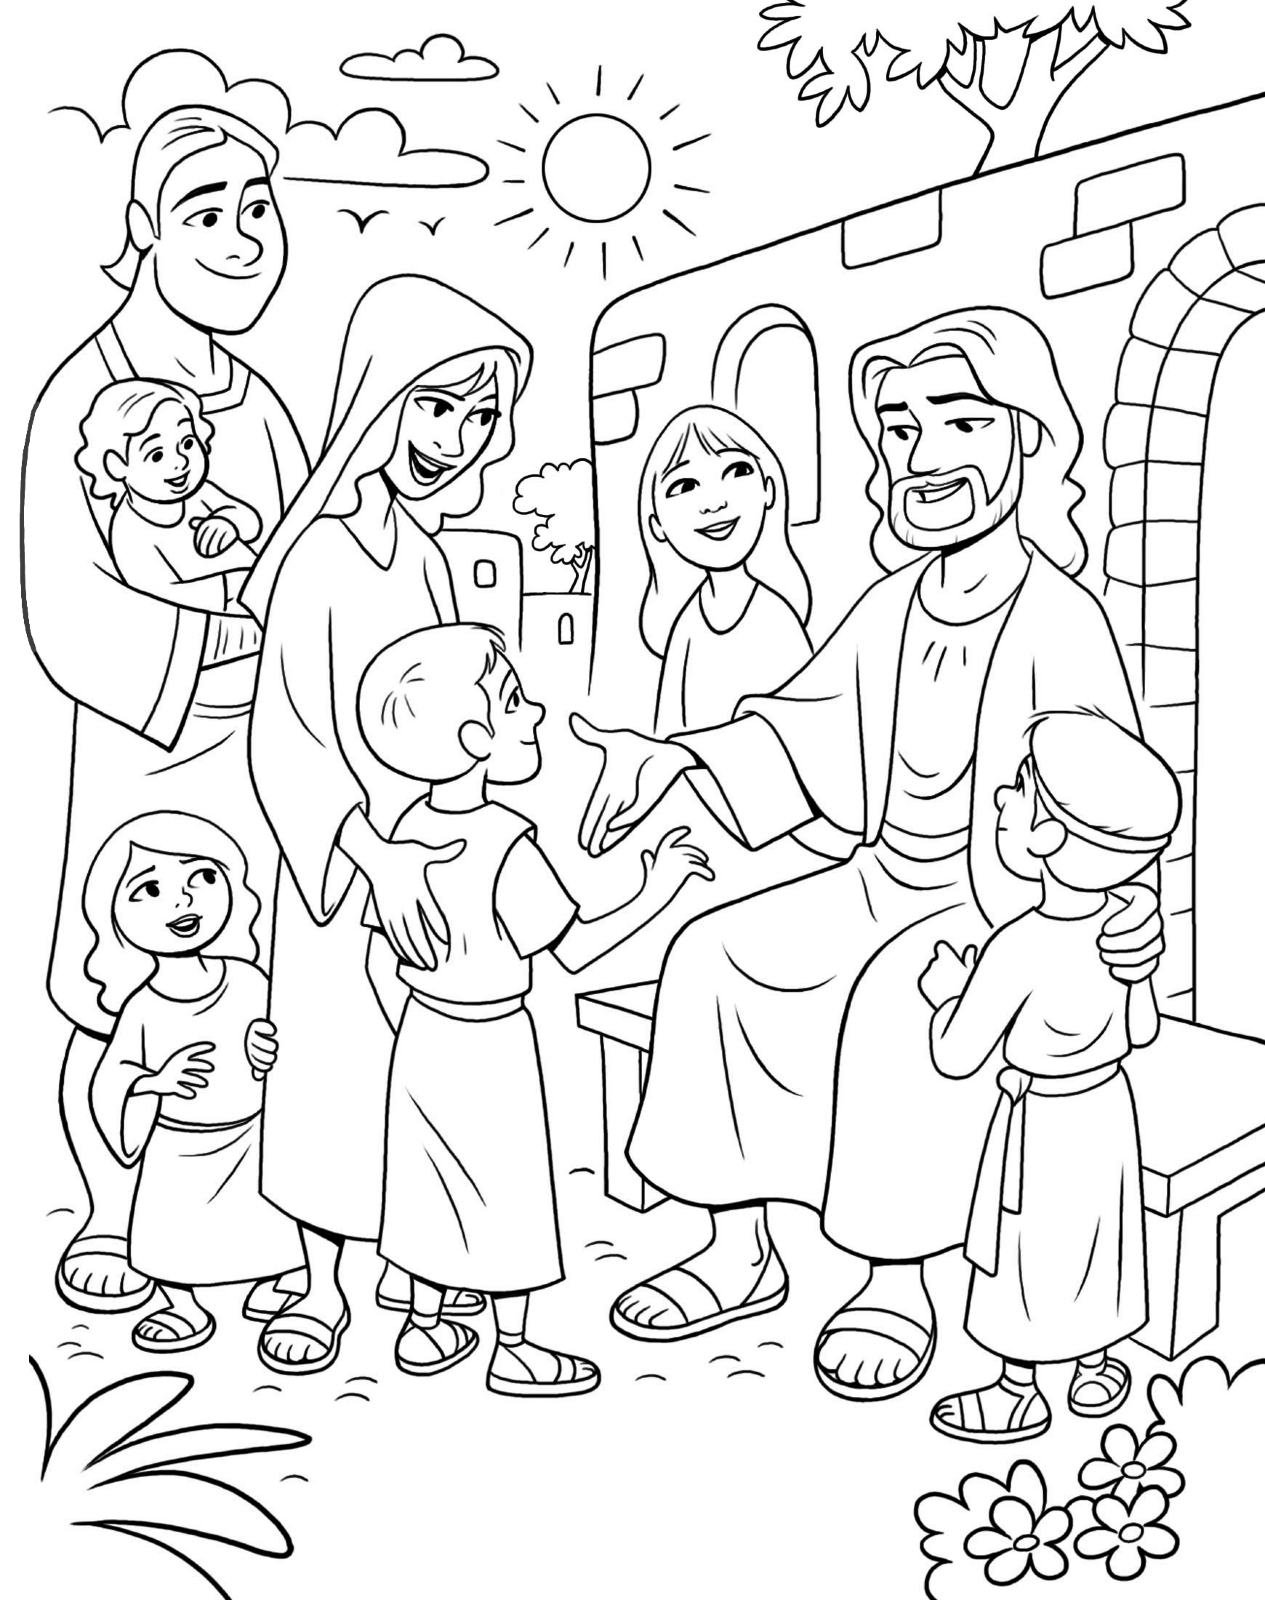 1265x1600 Children Sharing Coloring Pages Printable Coloring For Kids